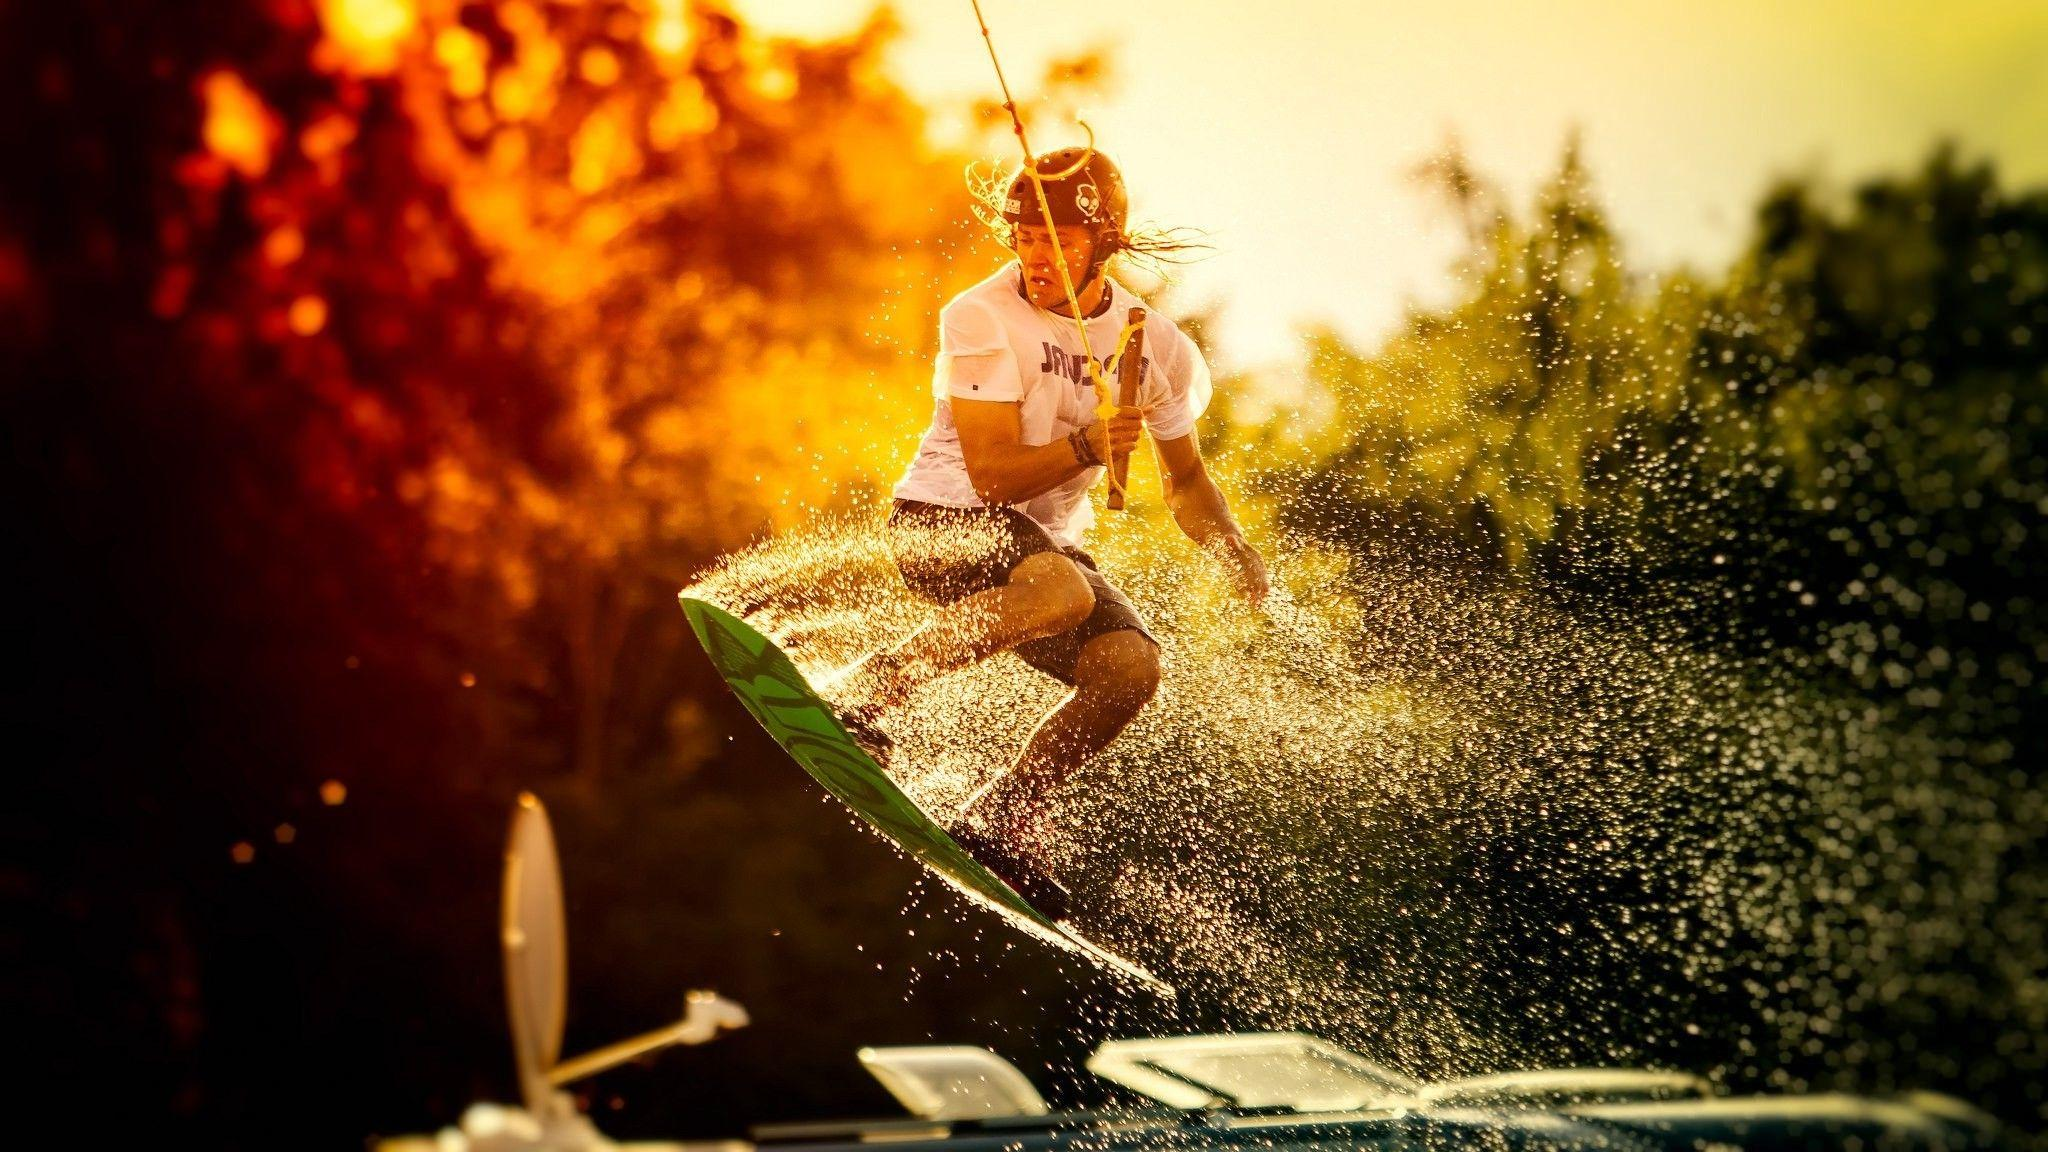 wakeboarding Wallpapers HD / Desktop and Mobile Backgrounds